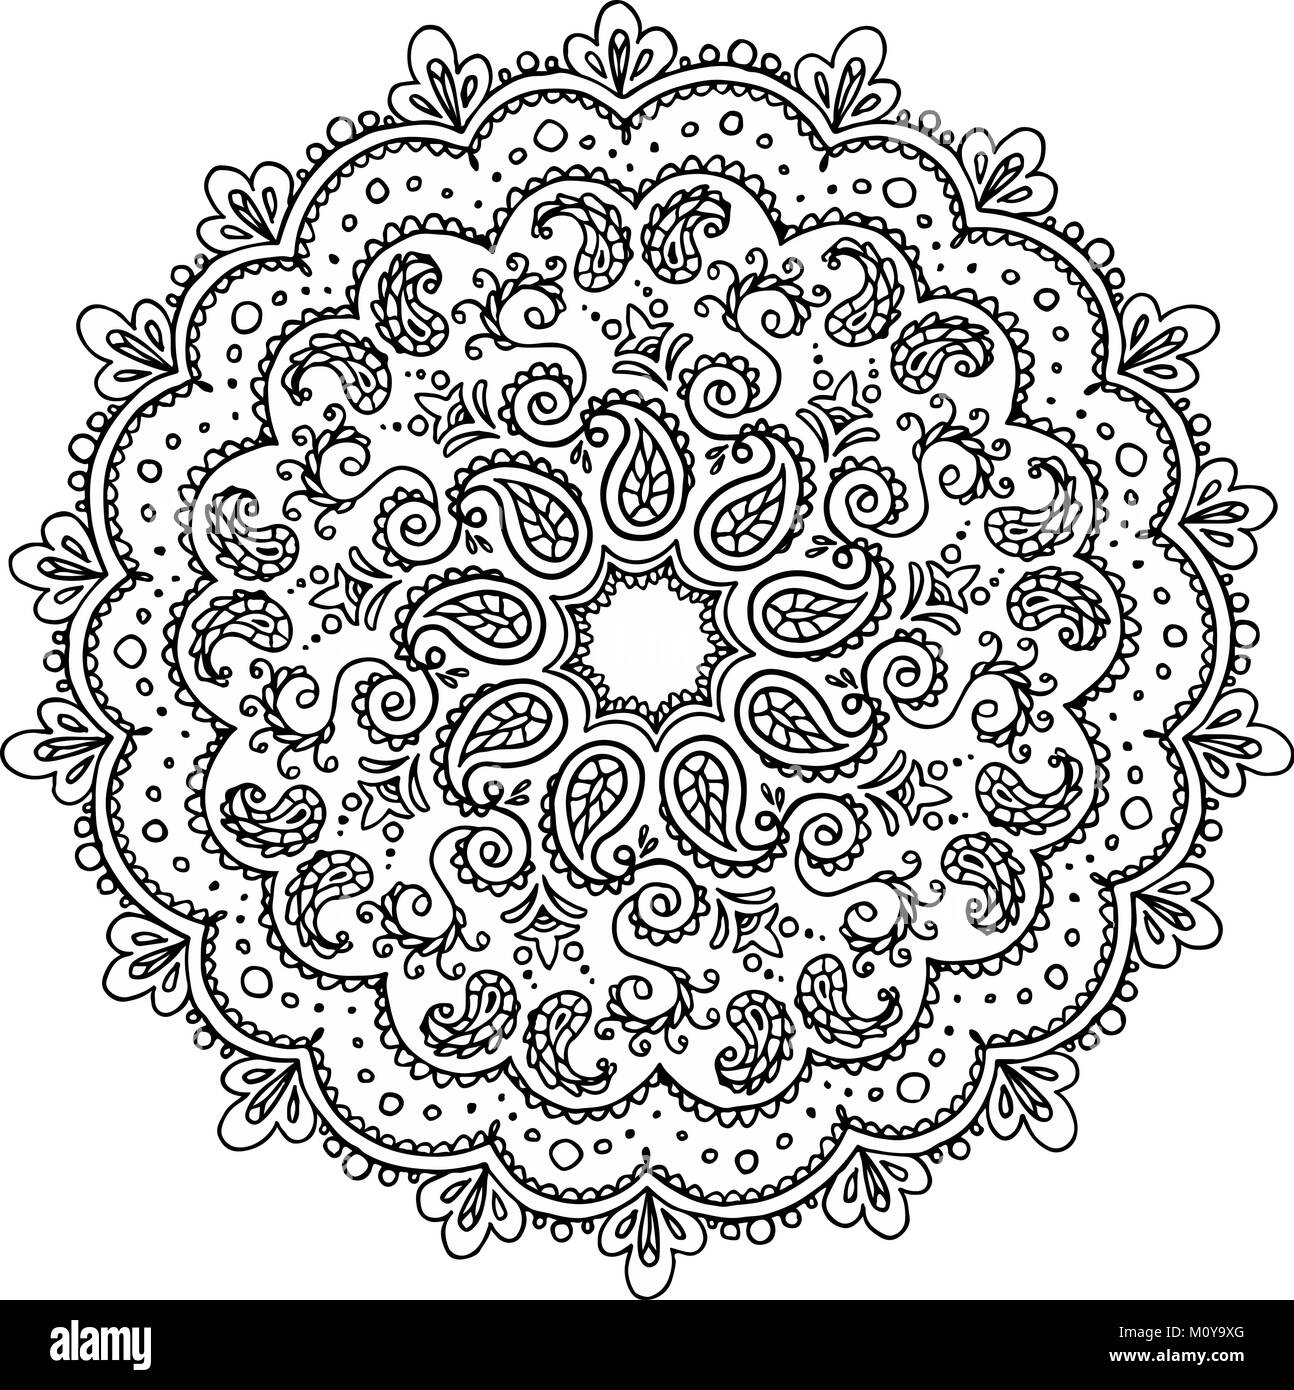 Boho Flower Coloring Page Vase With Doodle Flowers And Mandala